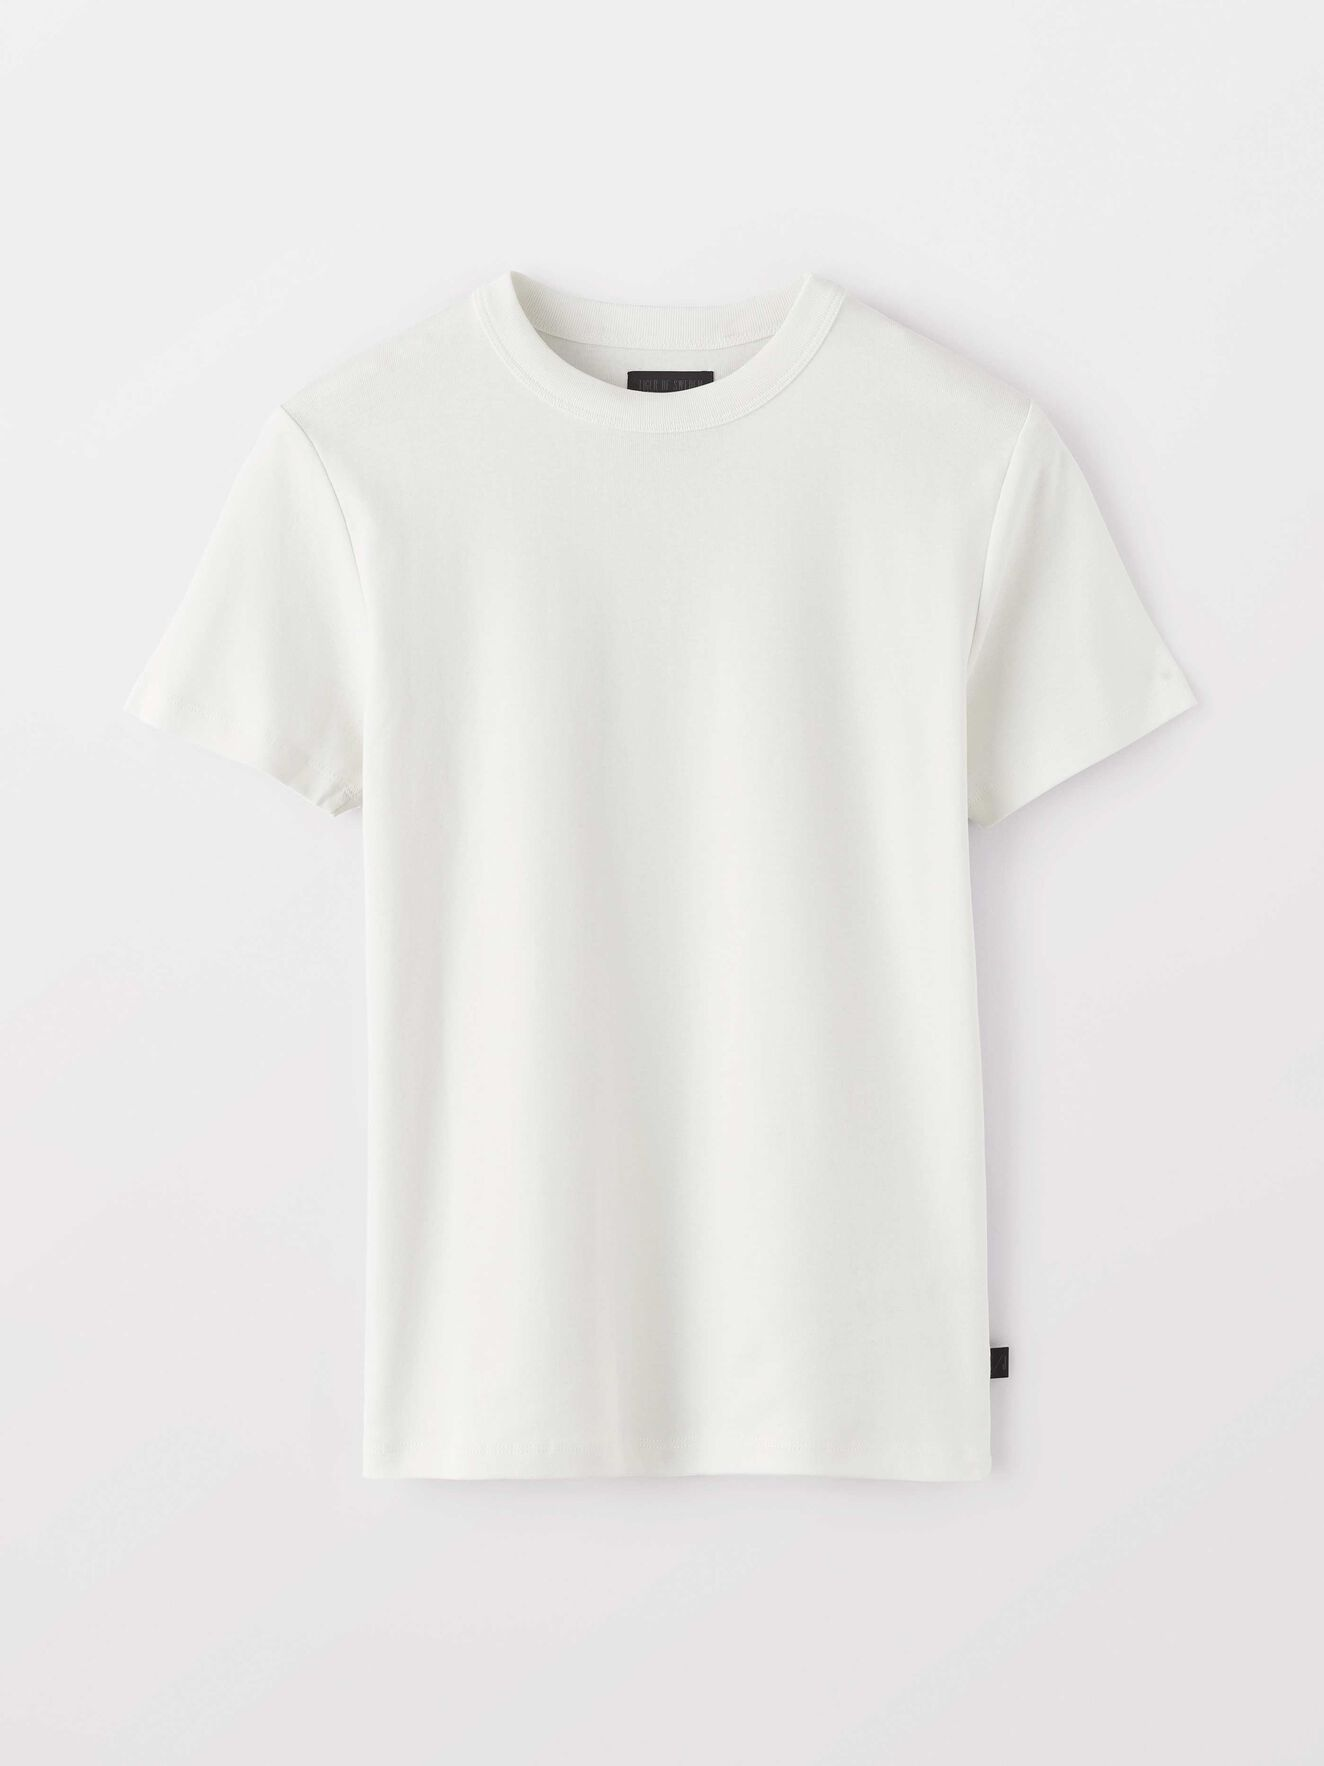 Essek T-Shirt in White Light from Tiger of Sweden